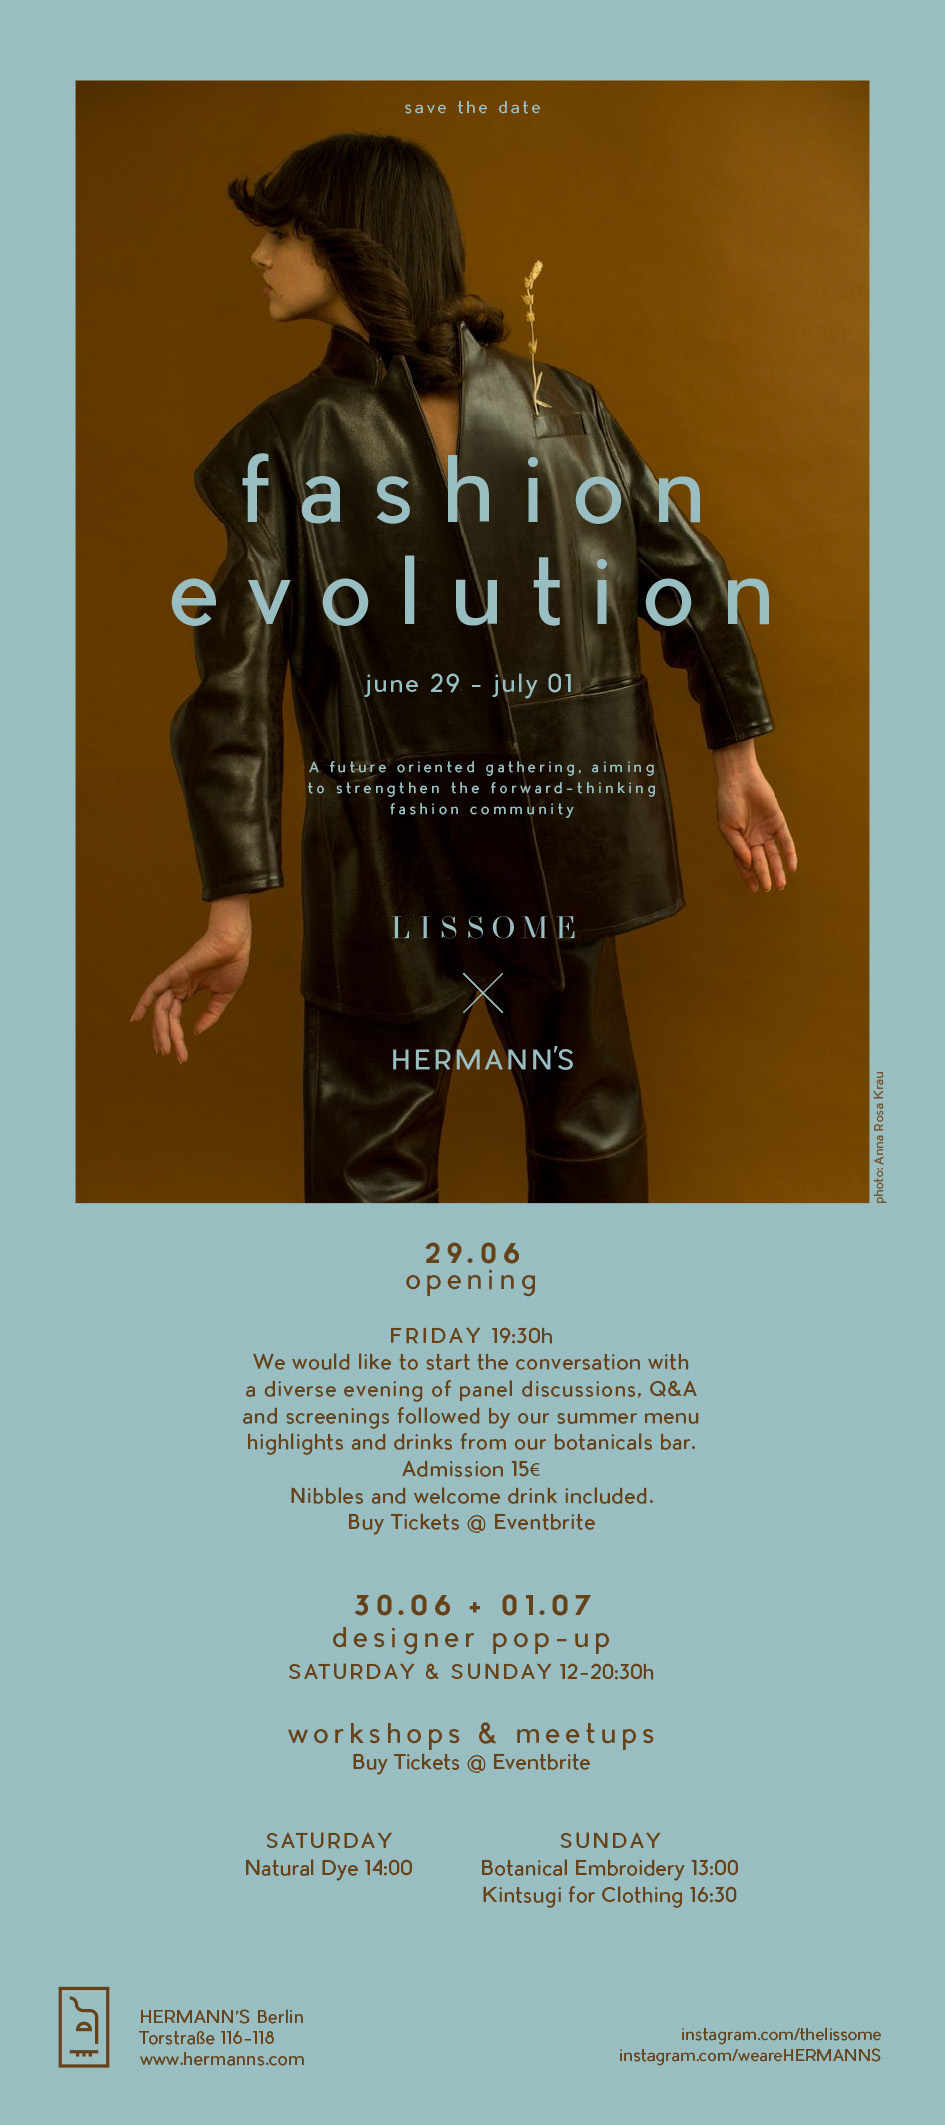 Fashion Evolution_save the date v2.jpg